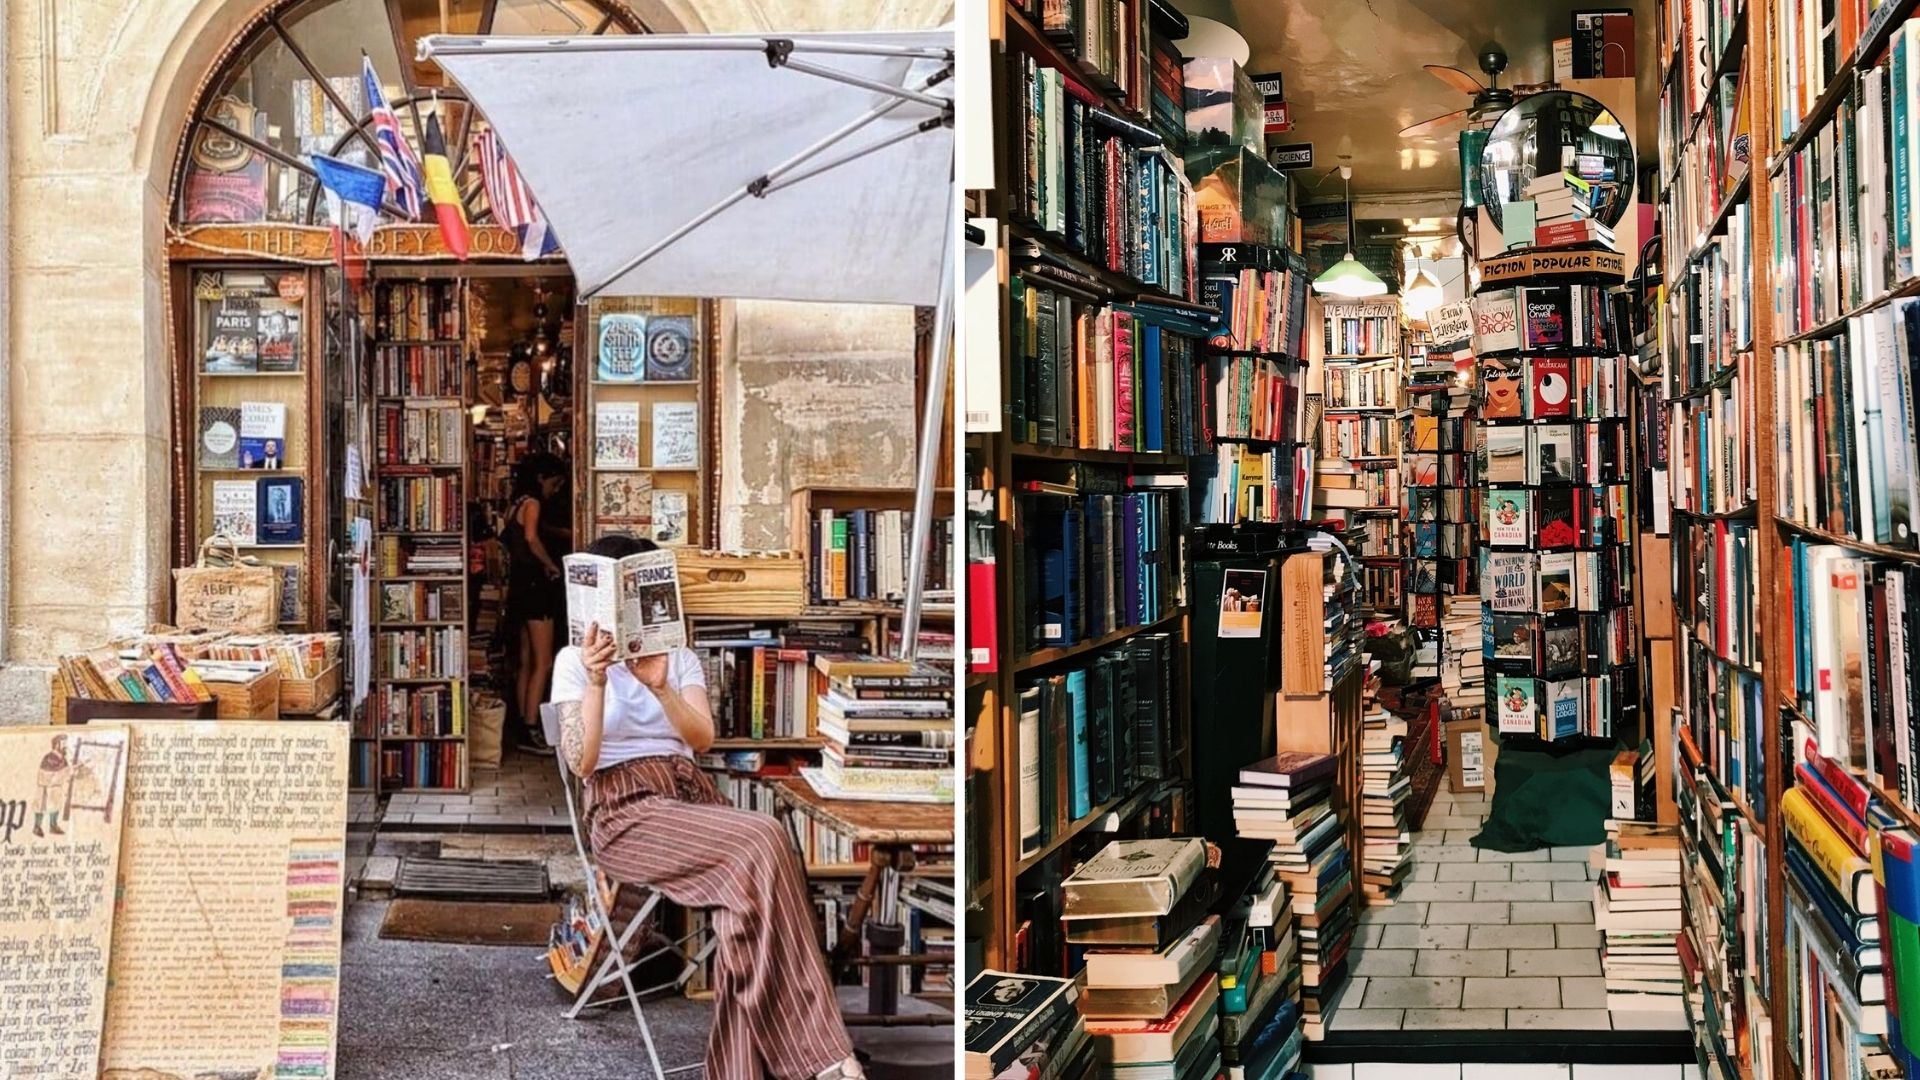 the abbey bookshop bookstore paris librairie anglaise anglophone anglosaxonne